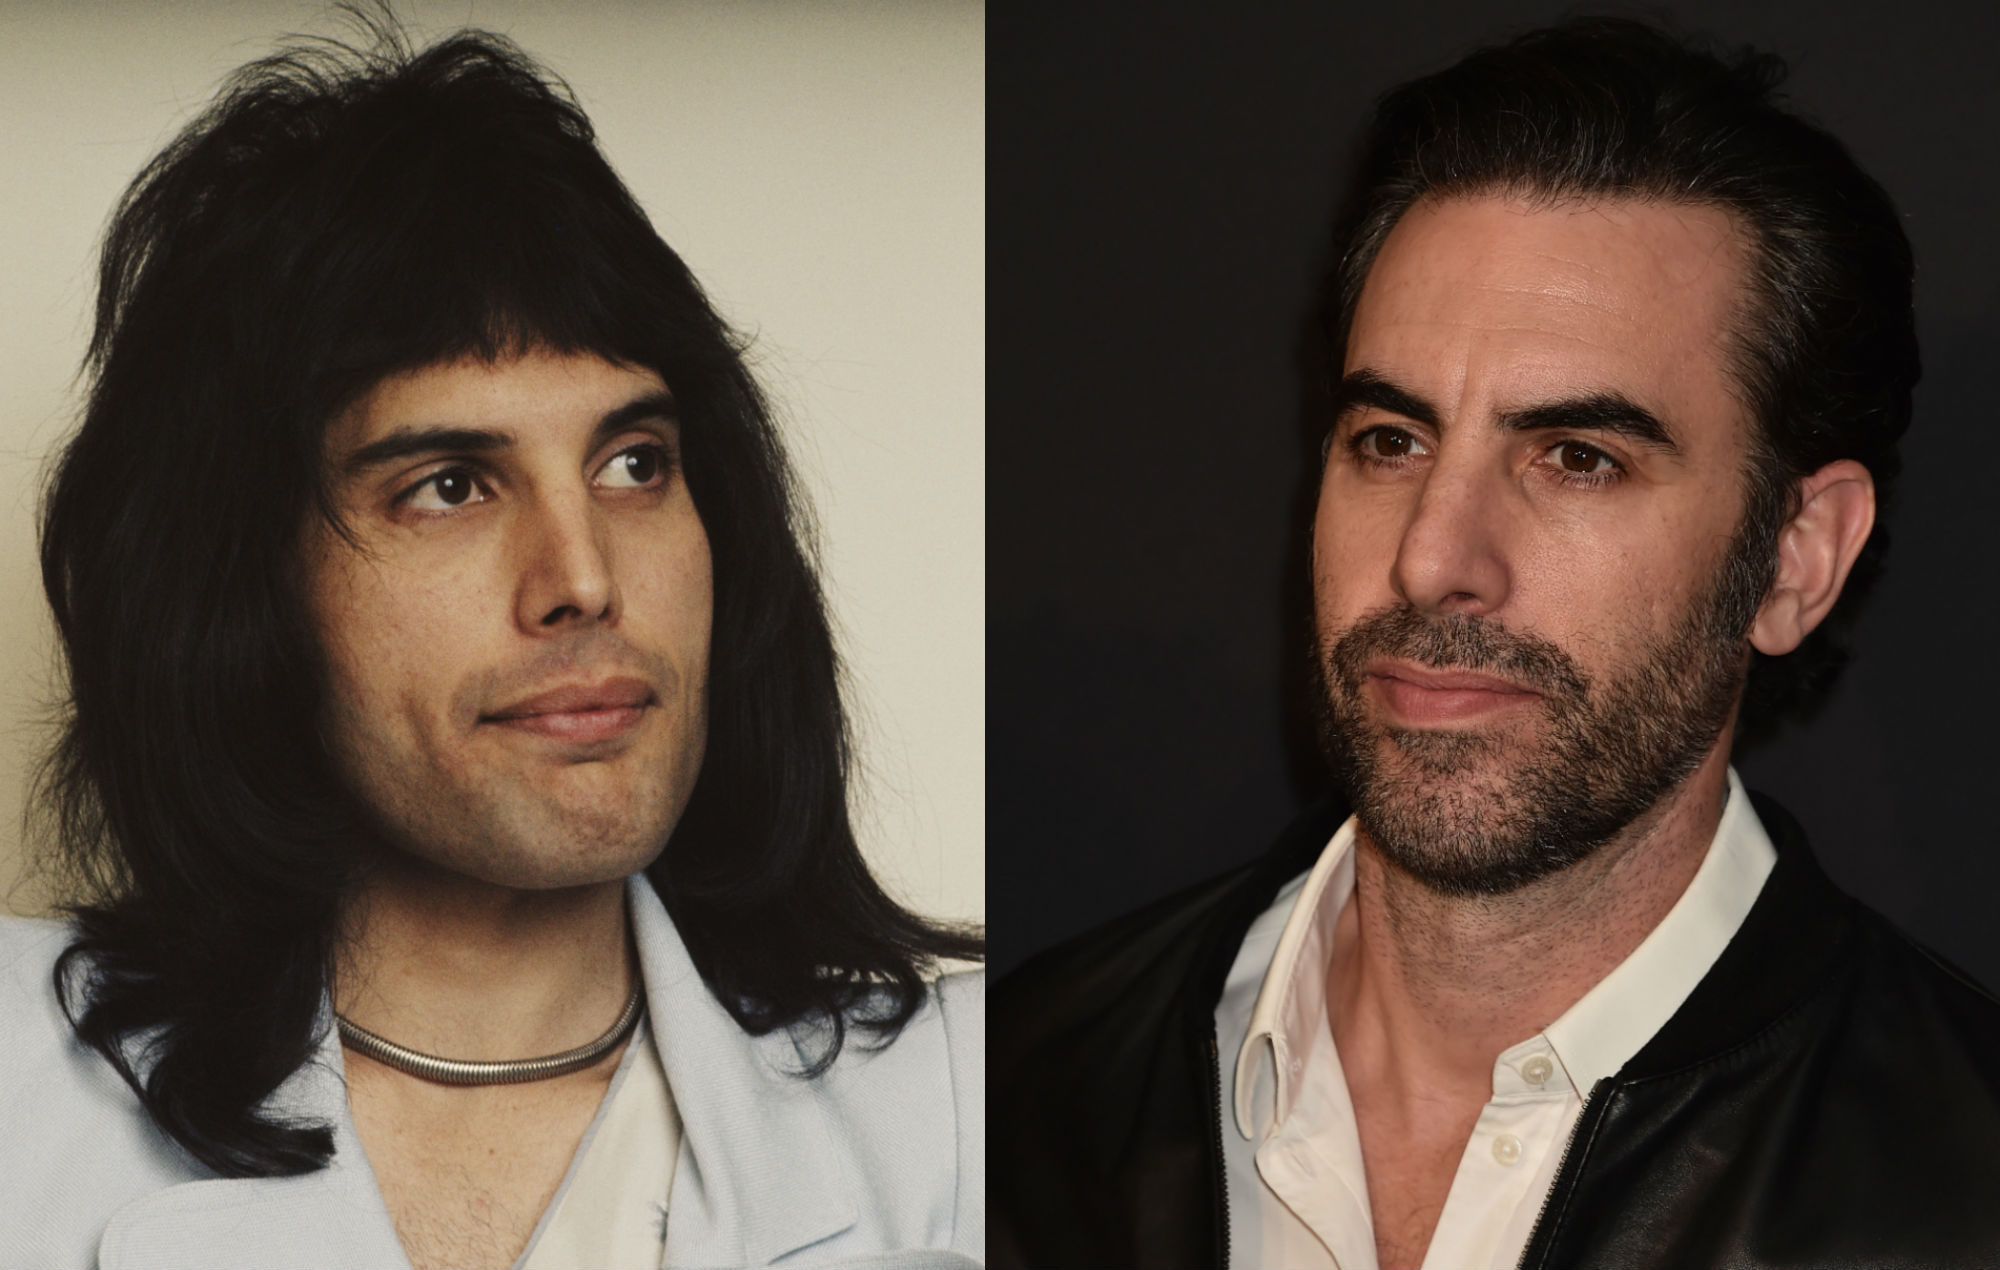 Queen's Roger Taylor on why Sacha Baron Cohen was dropped from playing Freddie Mercury in 'Bohemian Rhapsody'